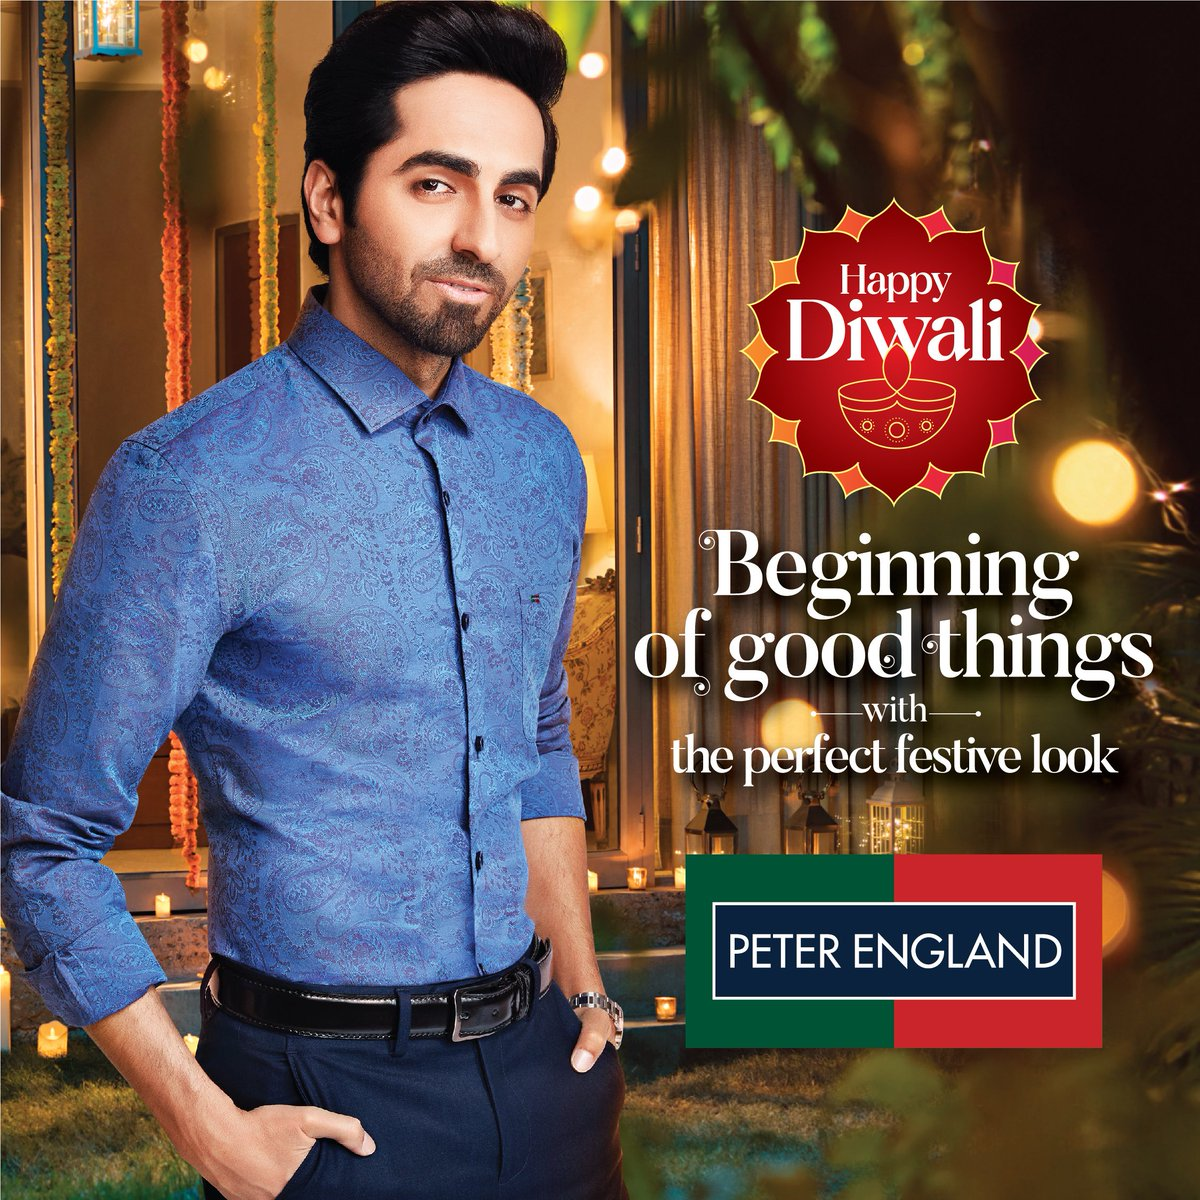 It's Diwali time! And here's a sneak peek of my perfect festive look from @PeterEngland_! Like it? Visit:   #PerfectFestiveLook #DiwaliWithPeterEngland